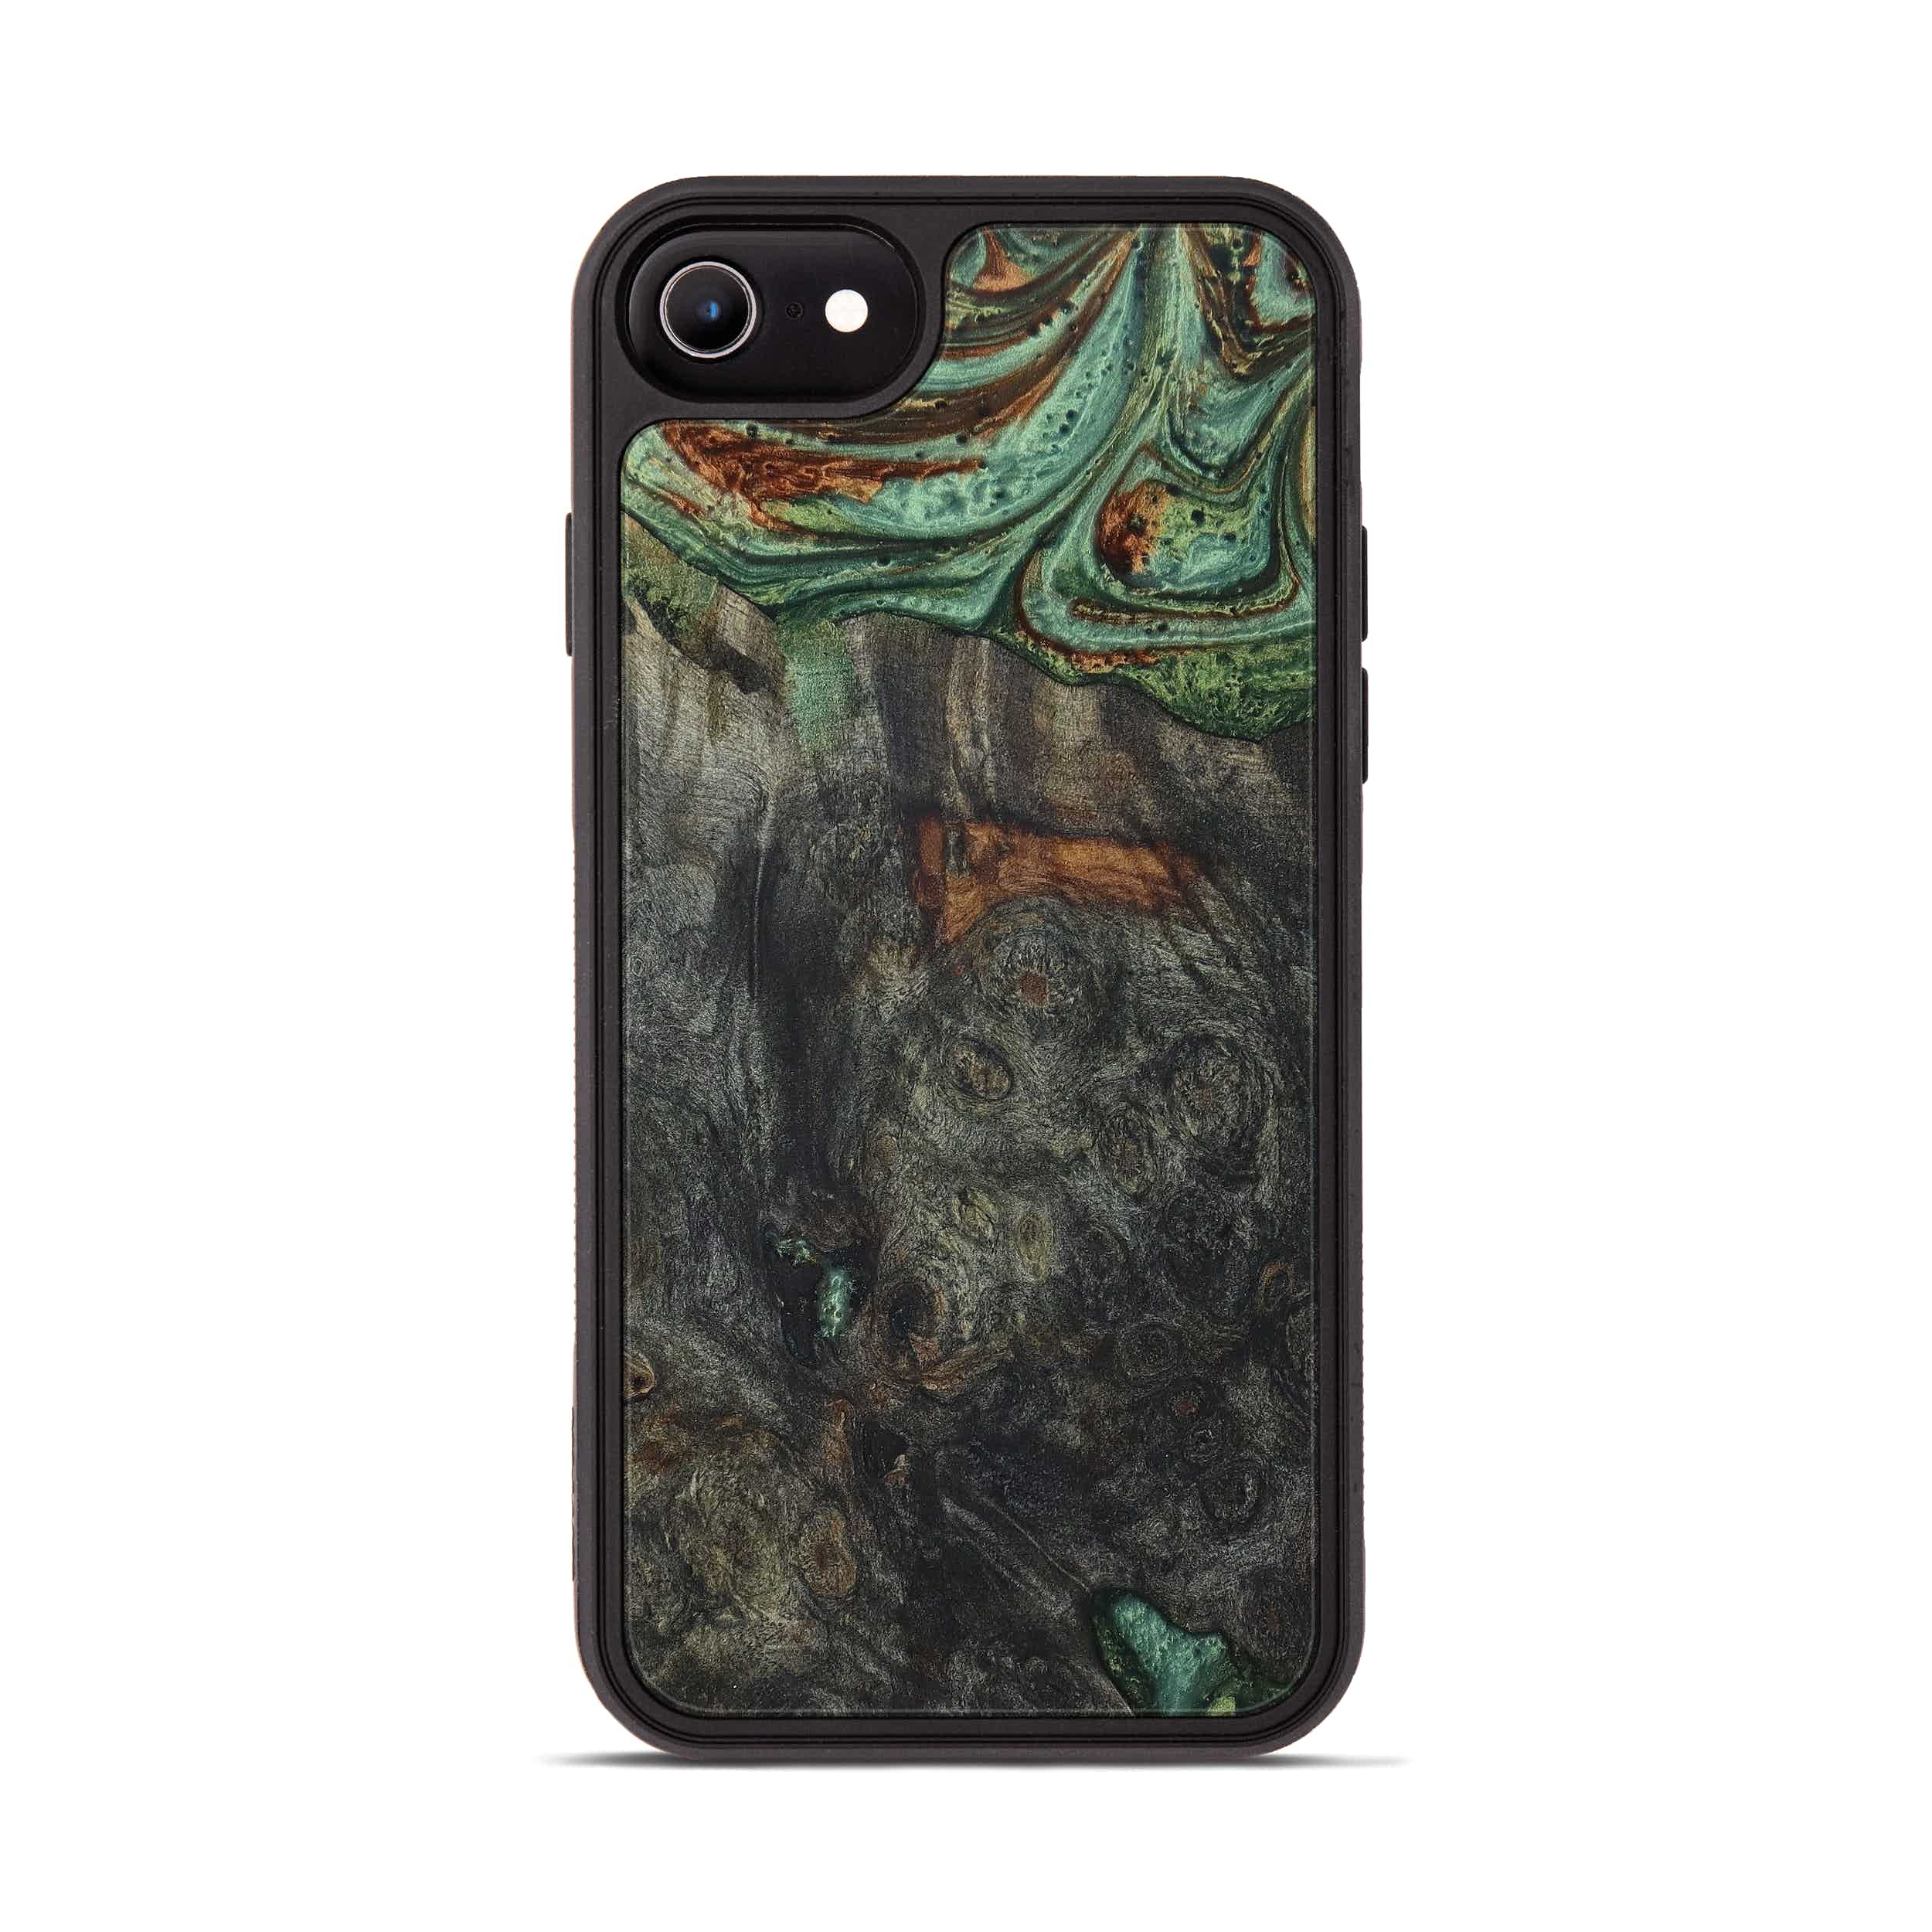 iPhone 6s Wood+Resin Phone Case - Shelby (Dark Green, 397868)